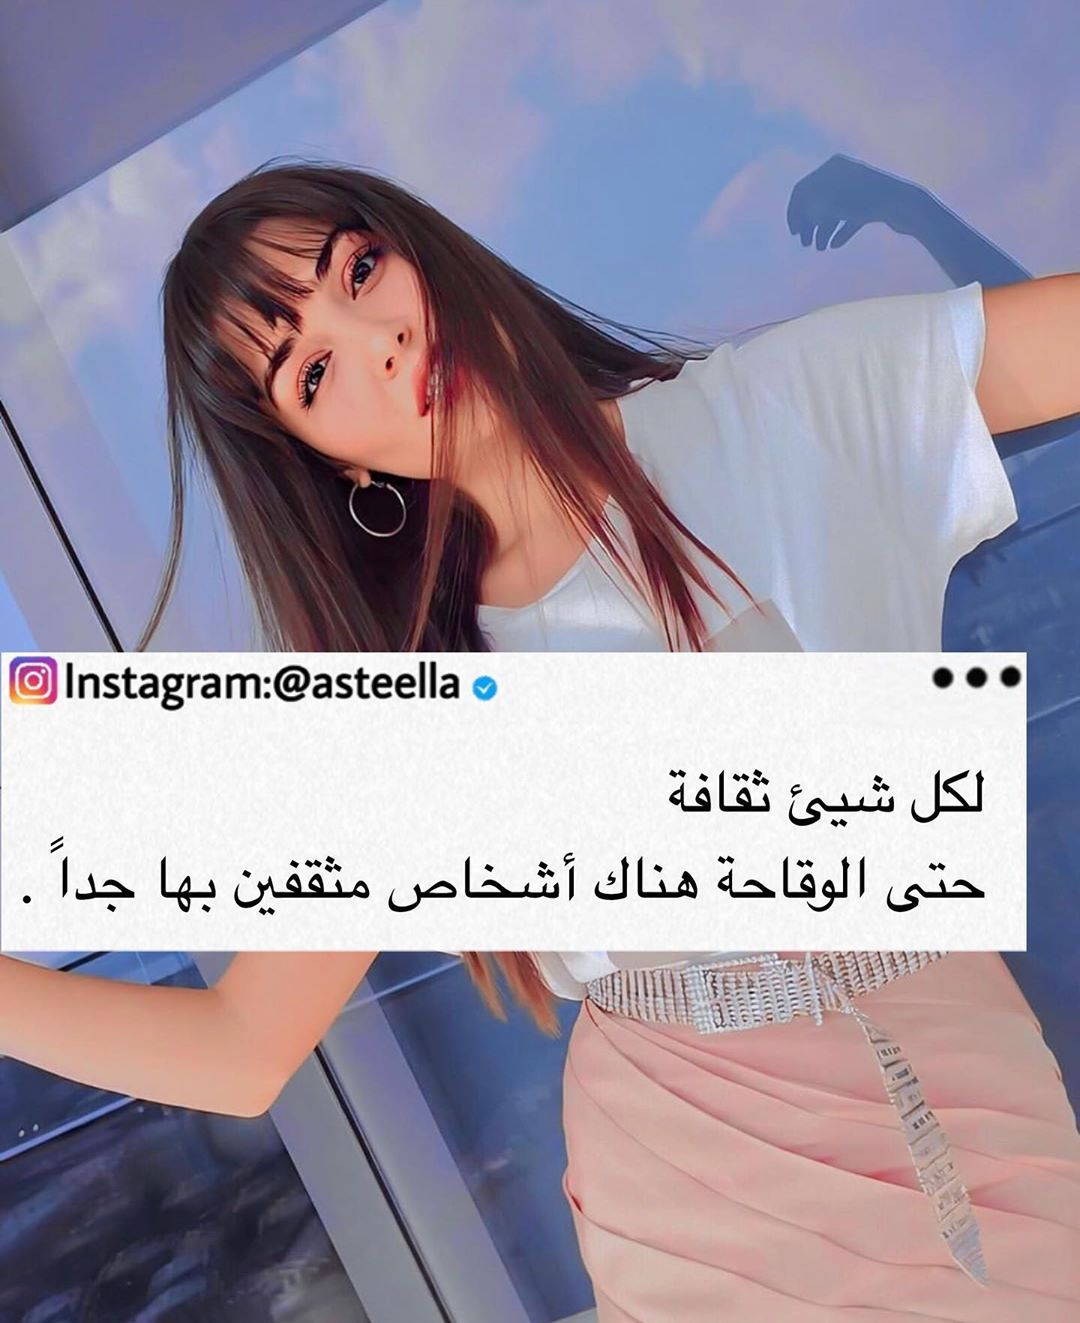 9 076 Likes 96 Comments L Asteella On Instagram فعلا أجمل ح Instagram Bio Quotes Wonder Quotes Instagram Story Questions